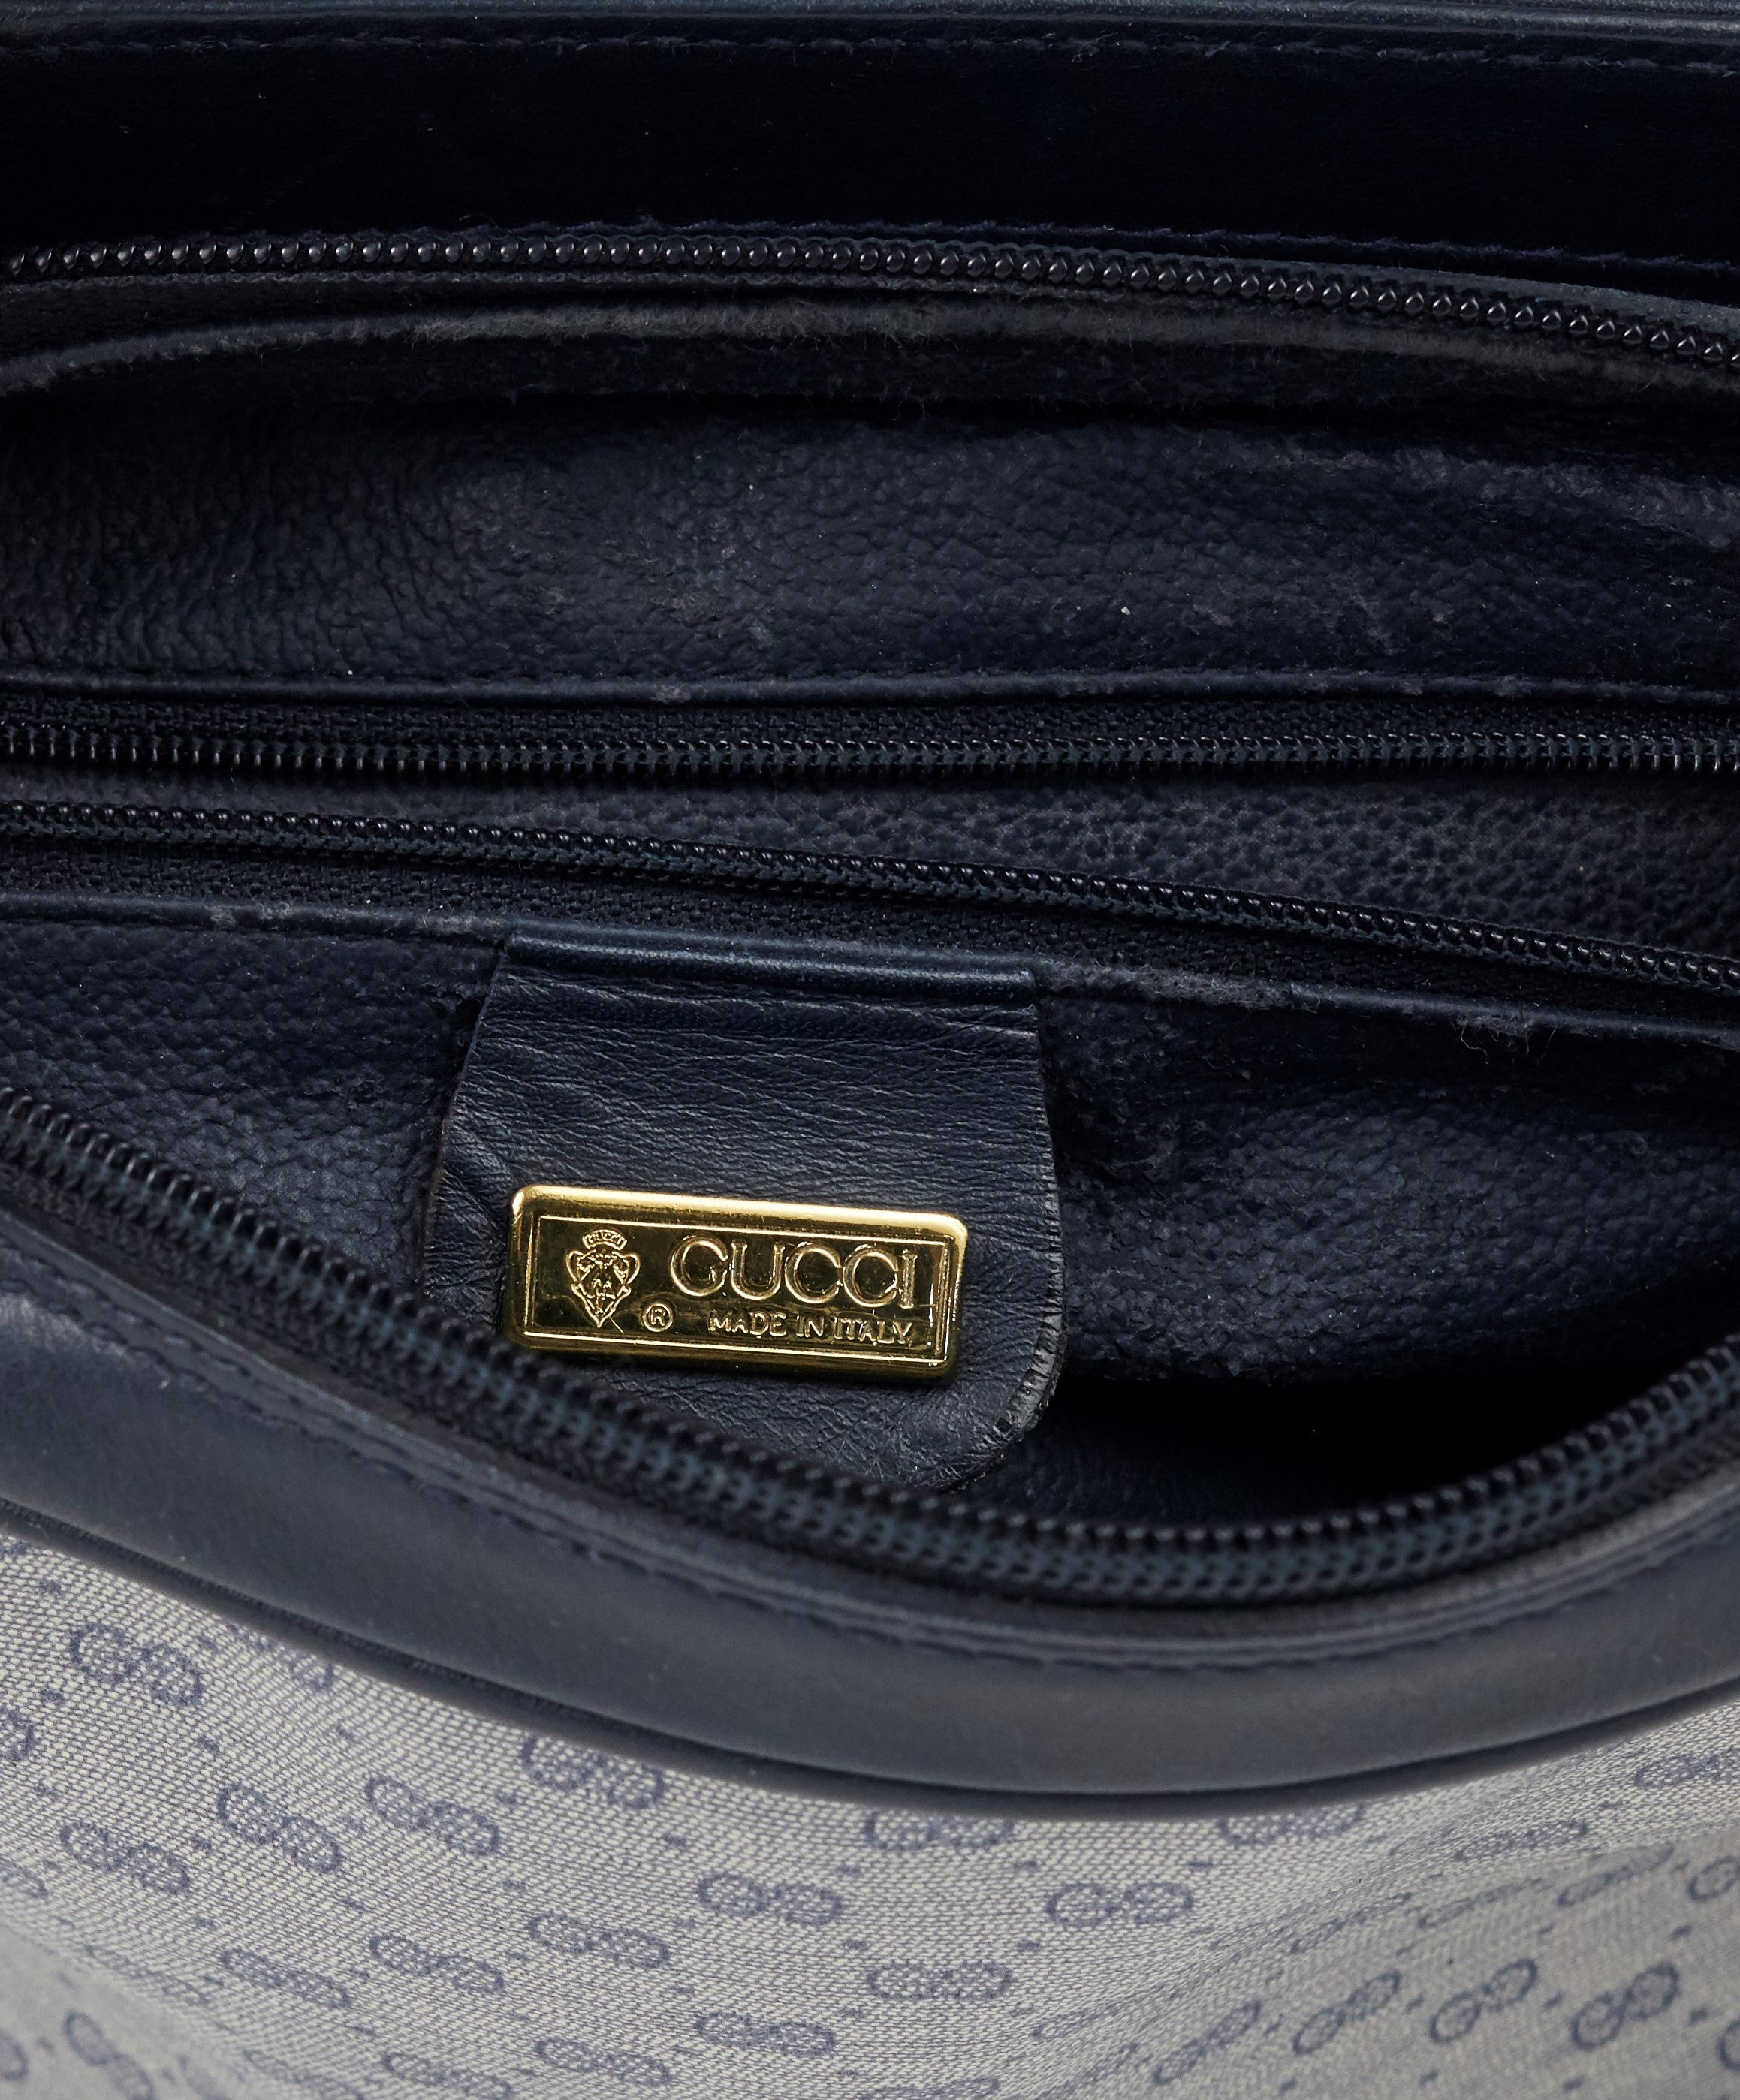 1980s Navy Monogram Canvas and Leather Shoulder Bag